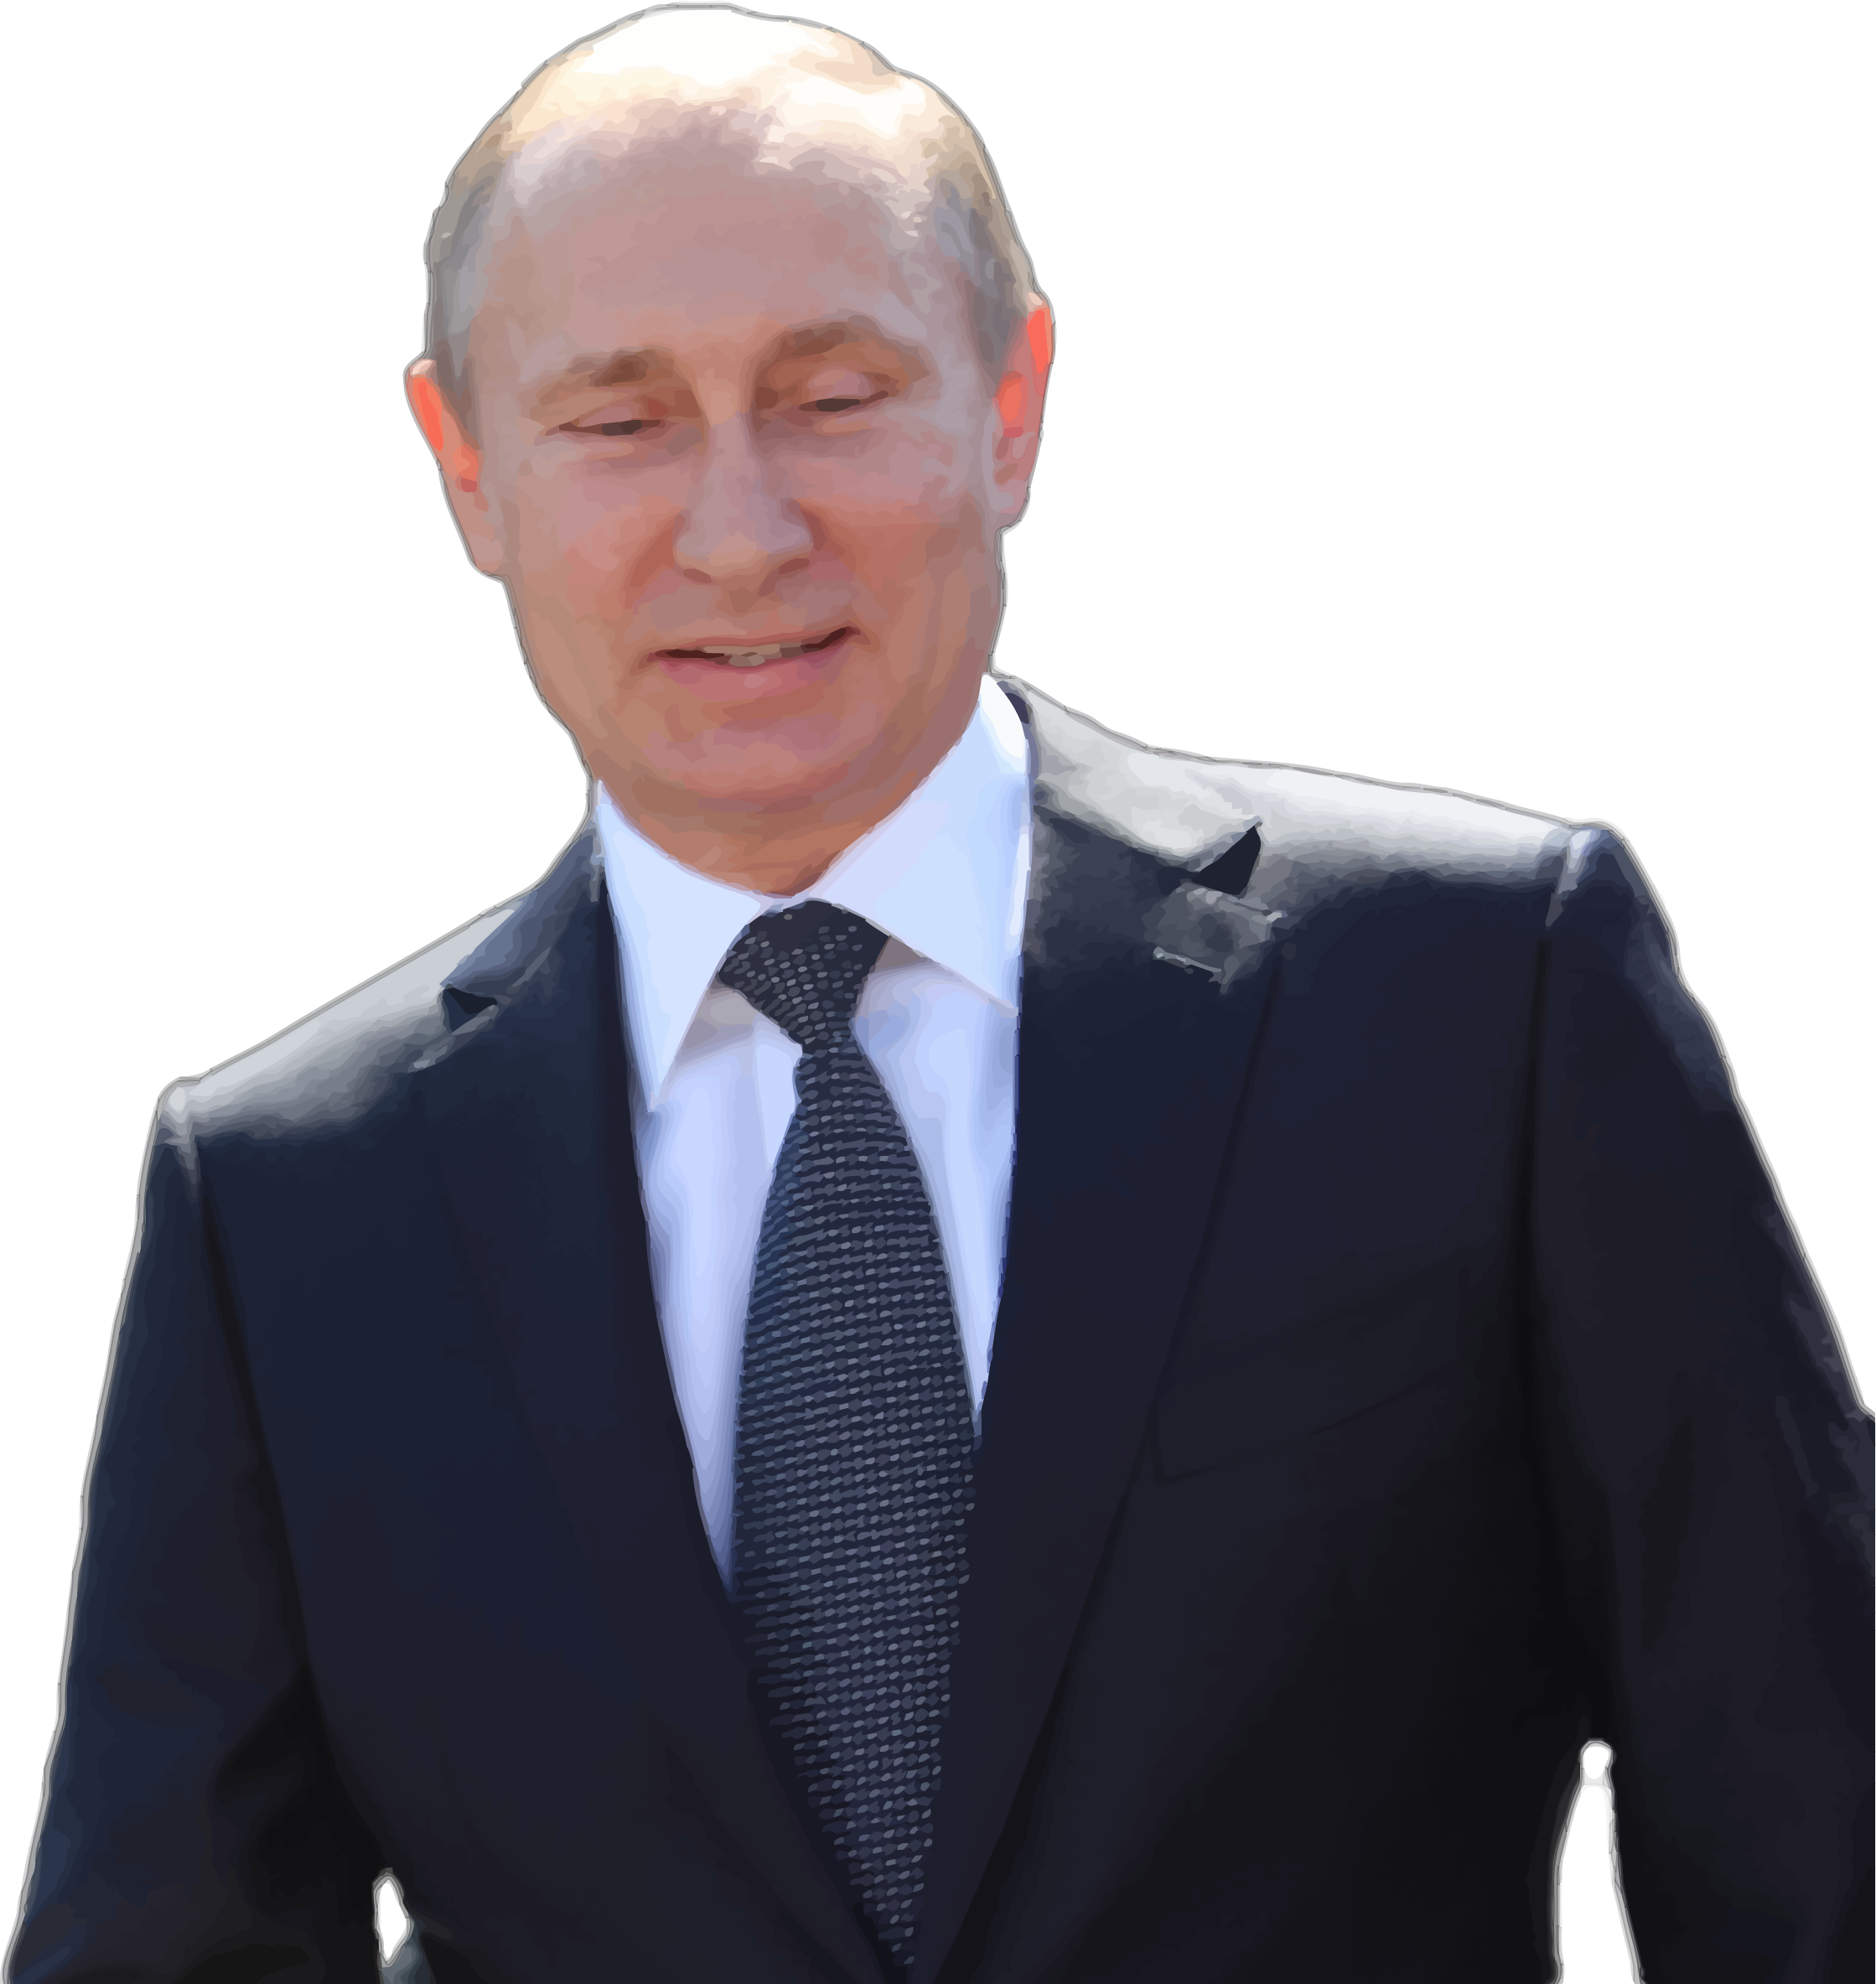 an ordinary familyvladimir putin was born Vladimir putin has gone from the kgb to becoming prime minister and president  of  vladimir vladimirovich putin was born in leningrad (now st  important  dates and holidays on a regular basis and has had a long history.